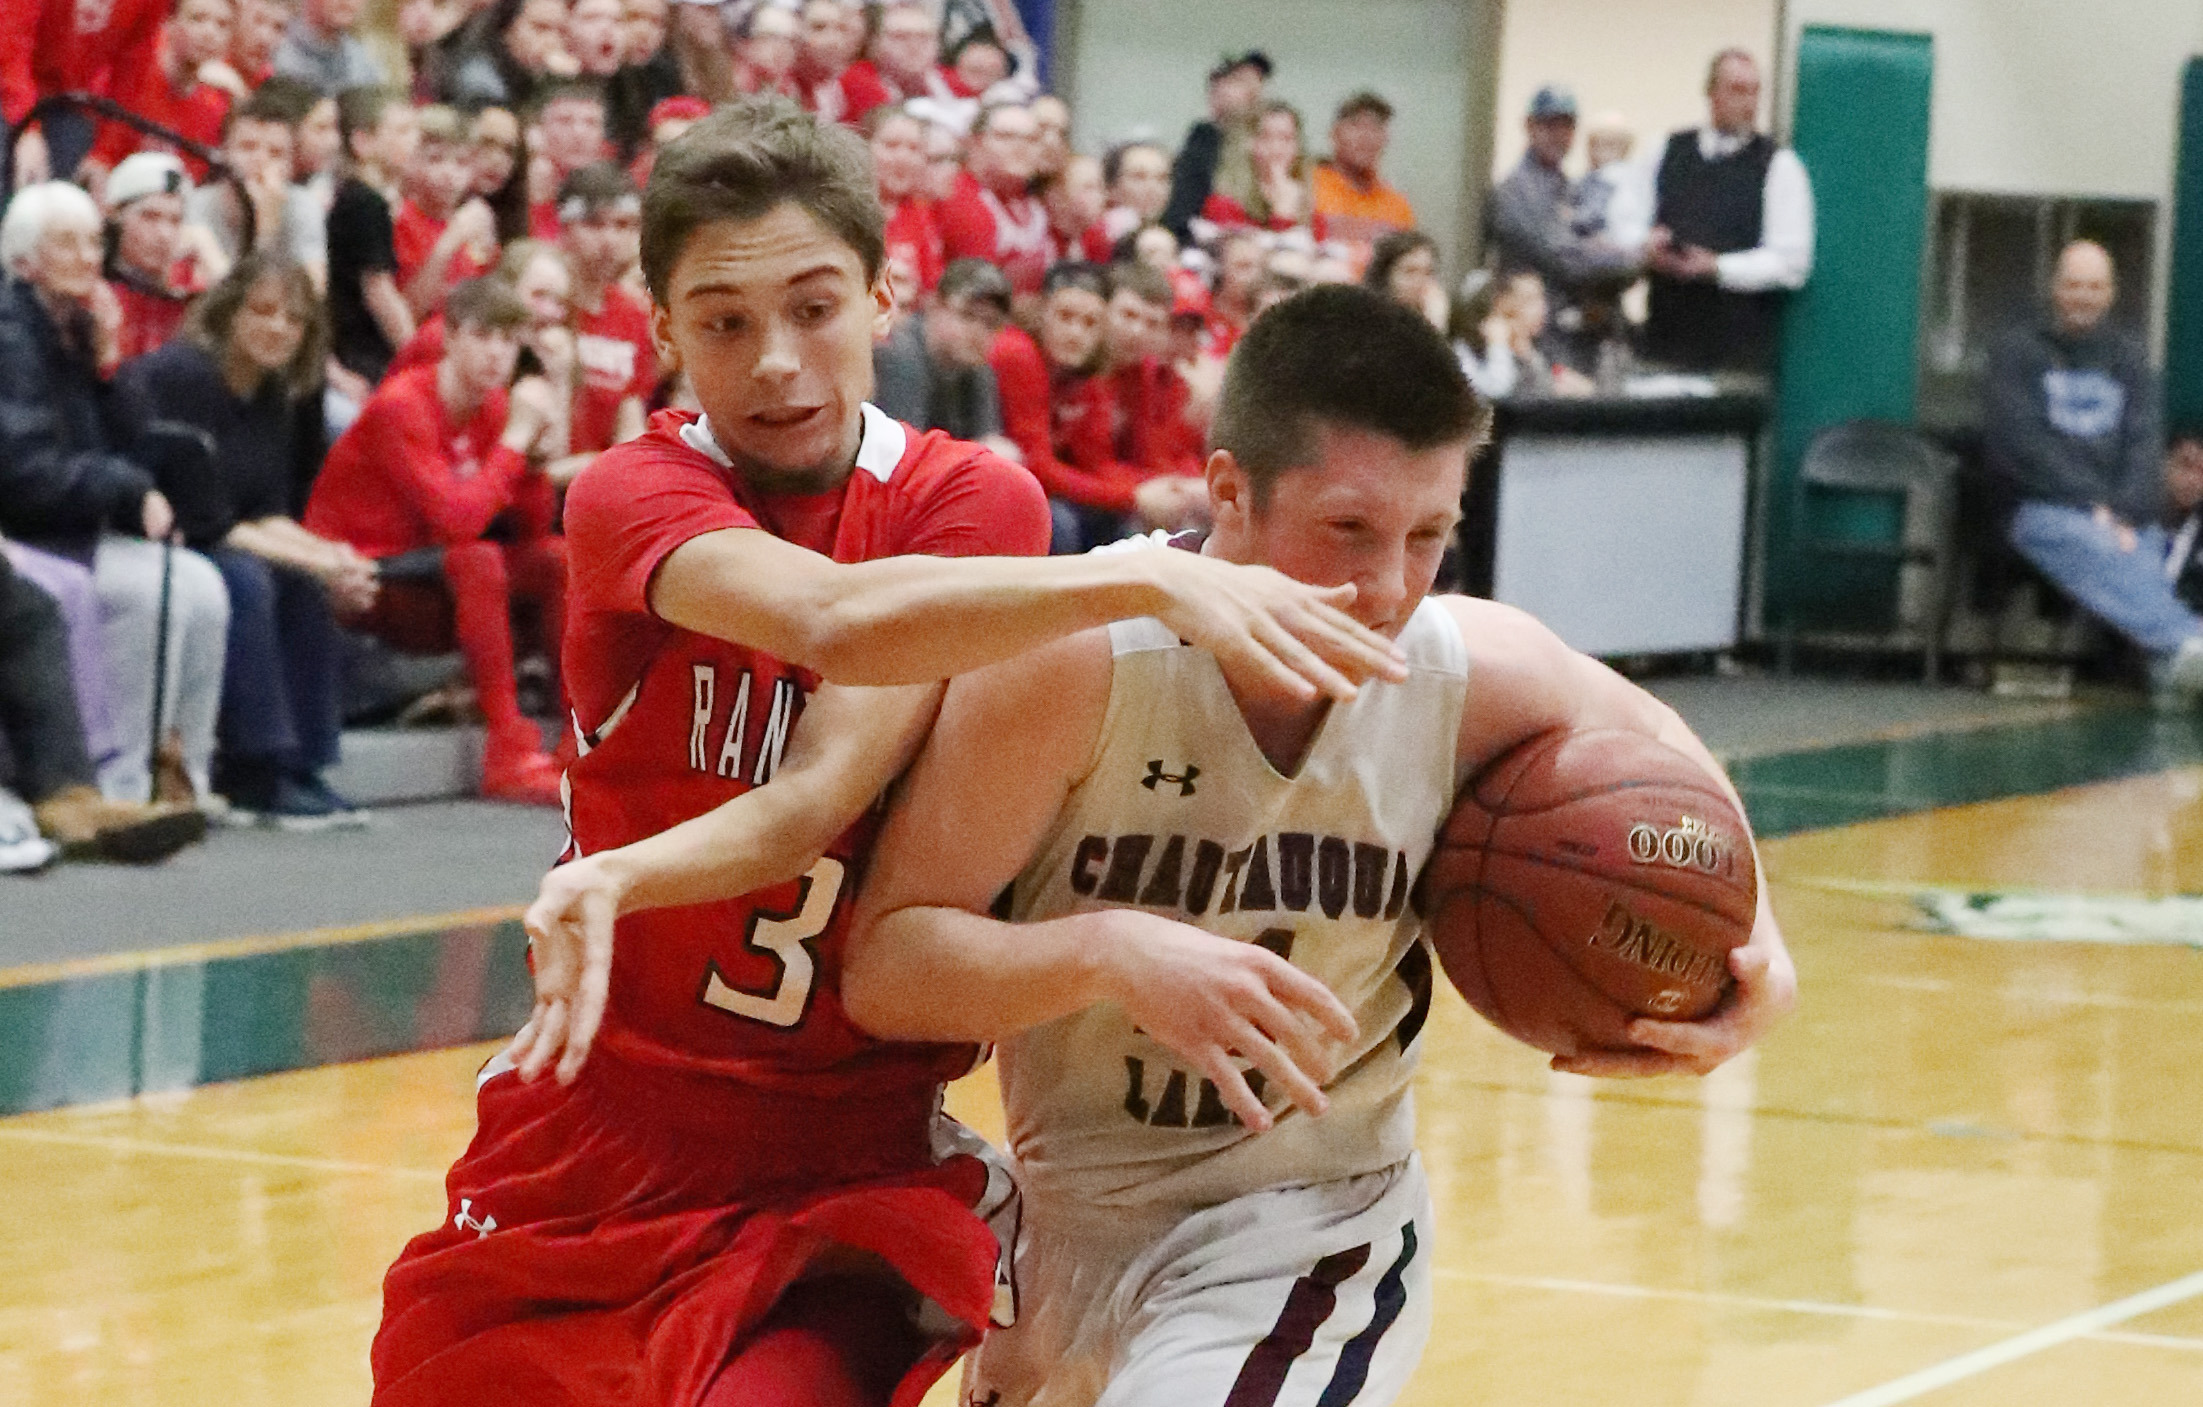 Randolph's Isaac Wakefield battles Chautauqua Lake's Tyler Meredith for the ball in the overall Class C Championship at Jamestown Community College. (James P. McCoy/Buffalo News)